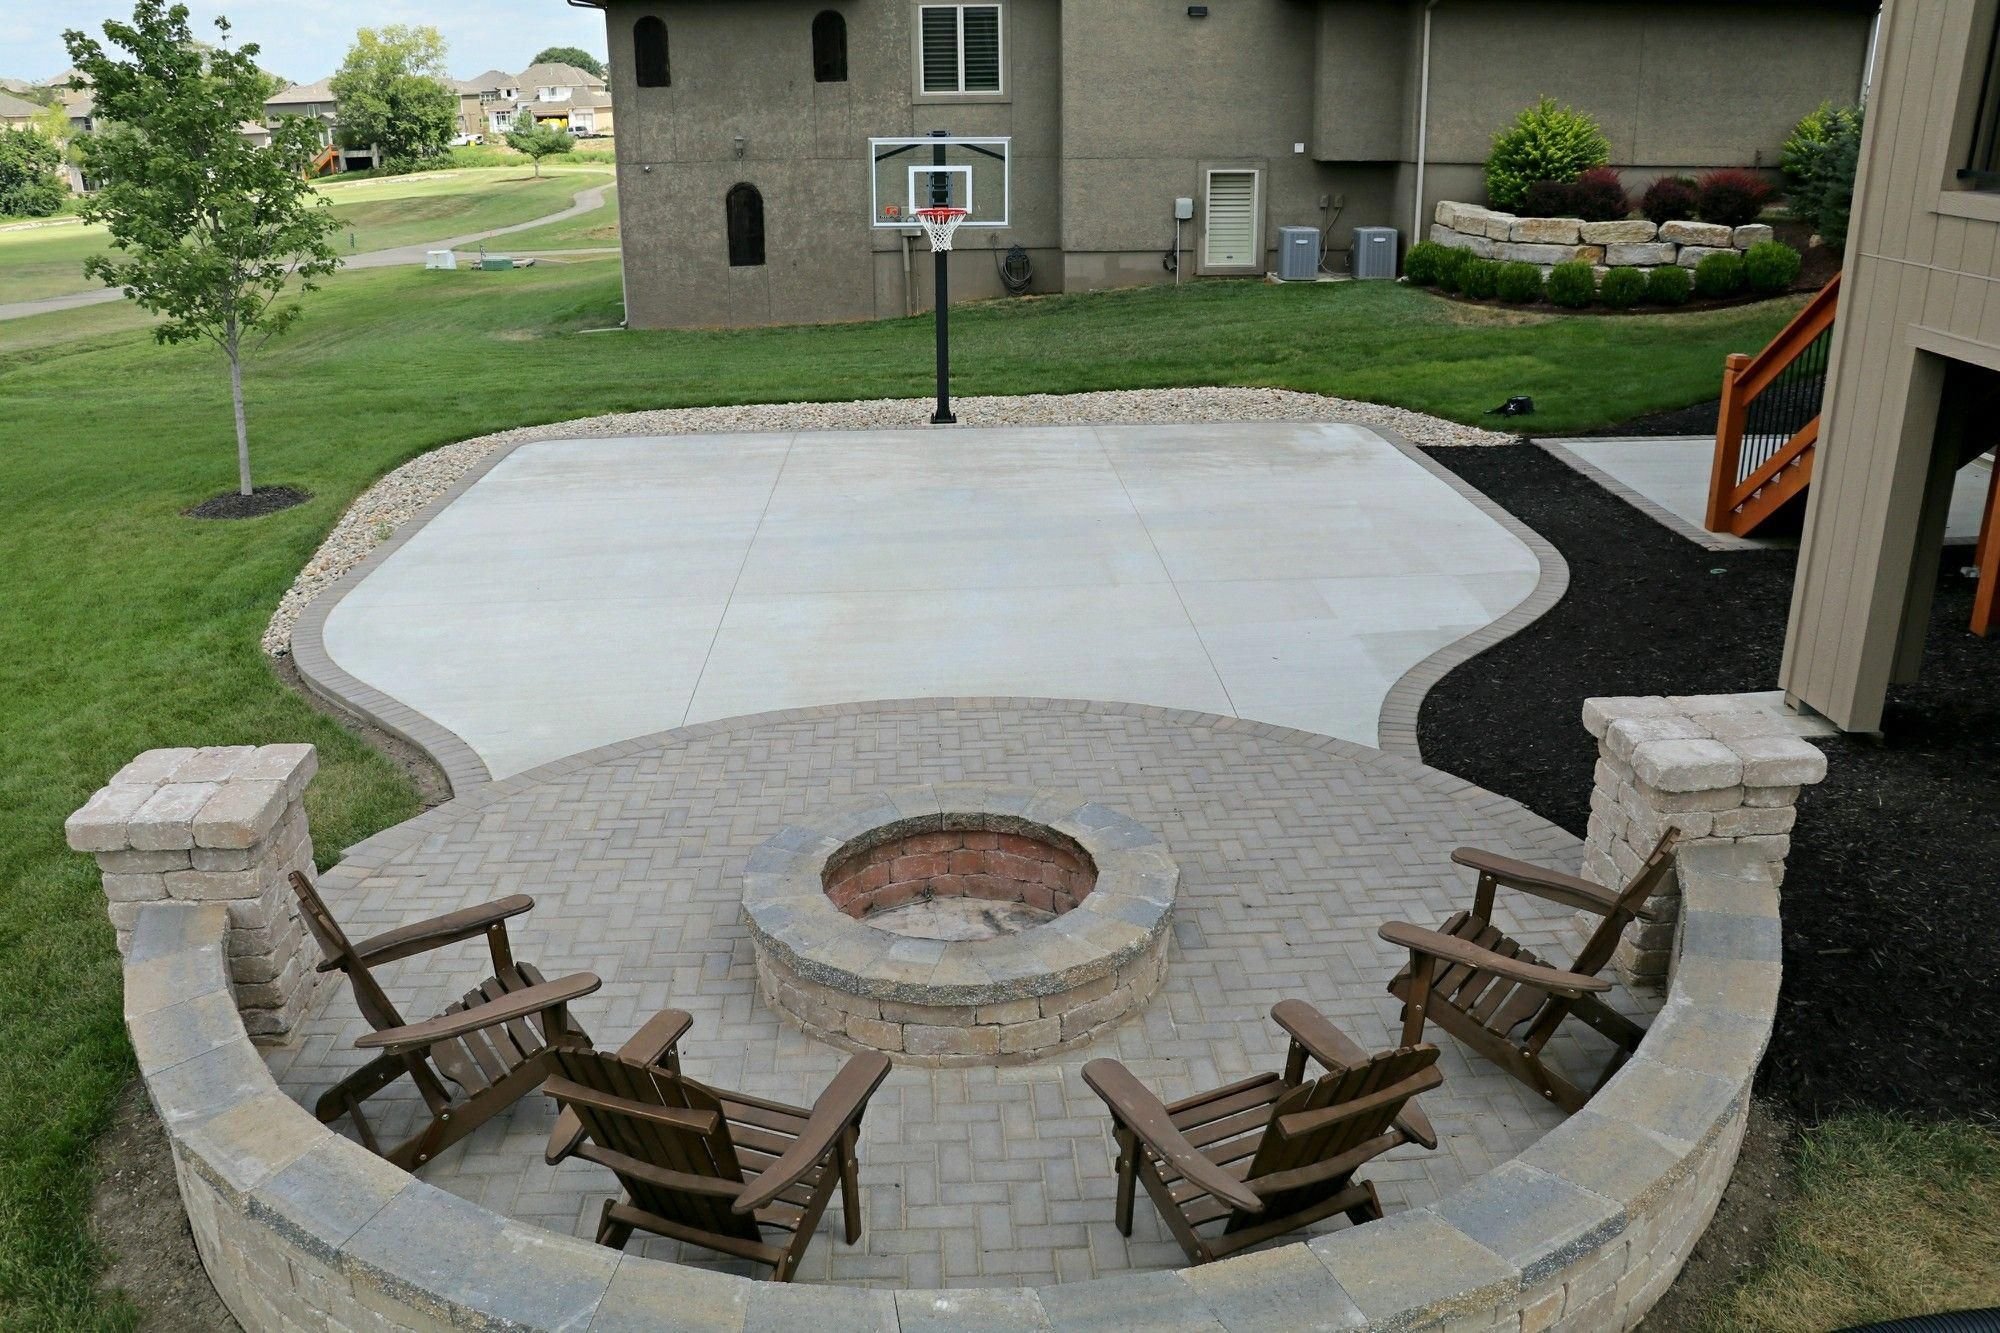 This Home Is Hardscape Because There Is No Design Or Flowers Its Modern And Has Brick Outdoor Basketball Court Backyard Backyard Basketball Fire Pit Backyard Backyard landscaping ideas with basketball court